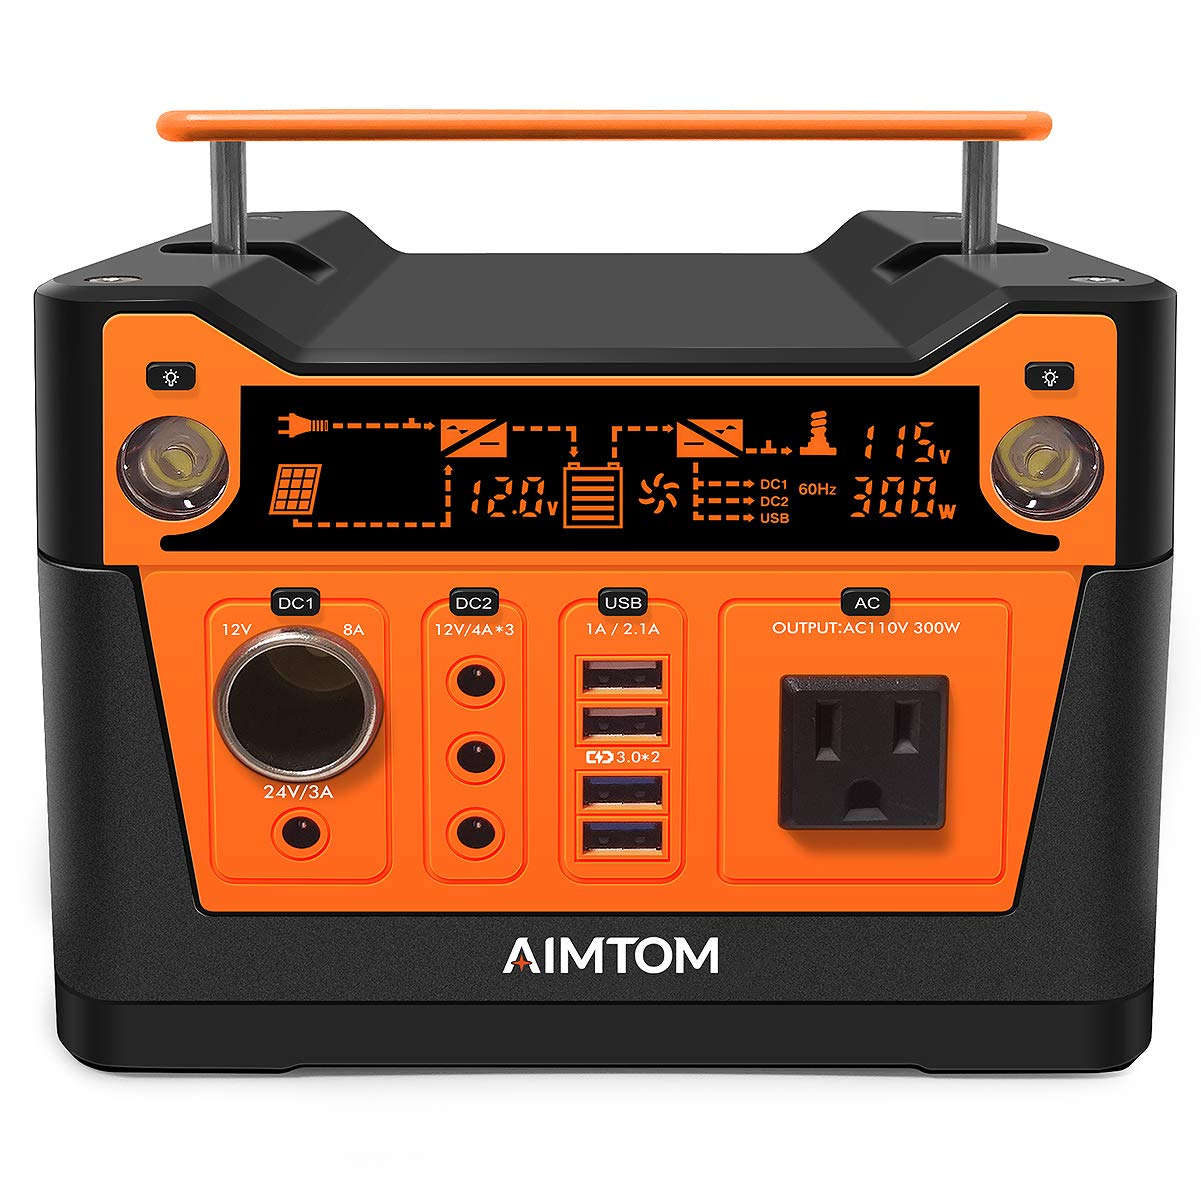 AIMTOM 300-Watt Portable Power Station - 280Wh Battery Powered Generator Alternative with 12V, 24V, AC and USB Outputs - Solar Rechargeable Lithium Backup Power - for Camping Outdoors RV Emergency